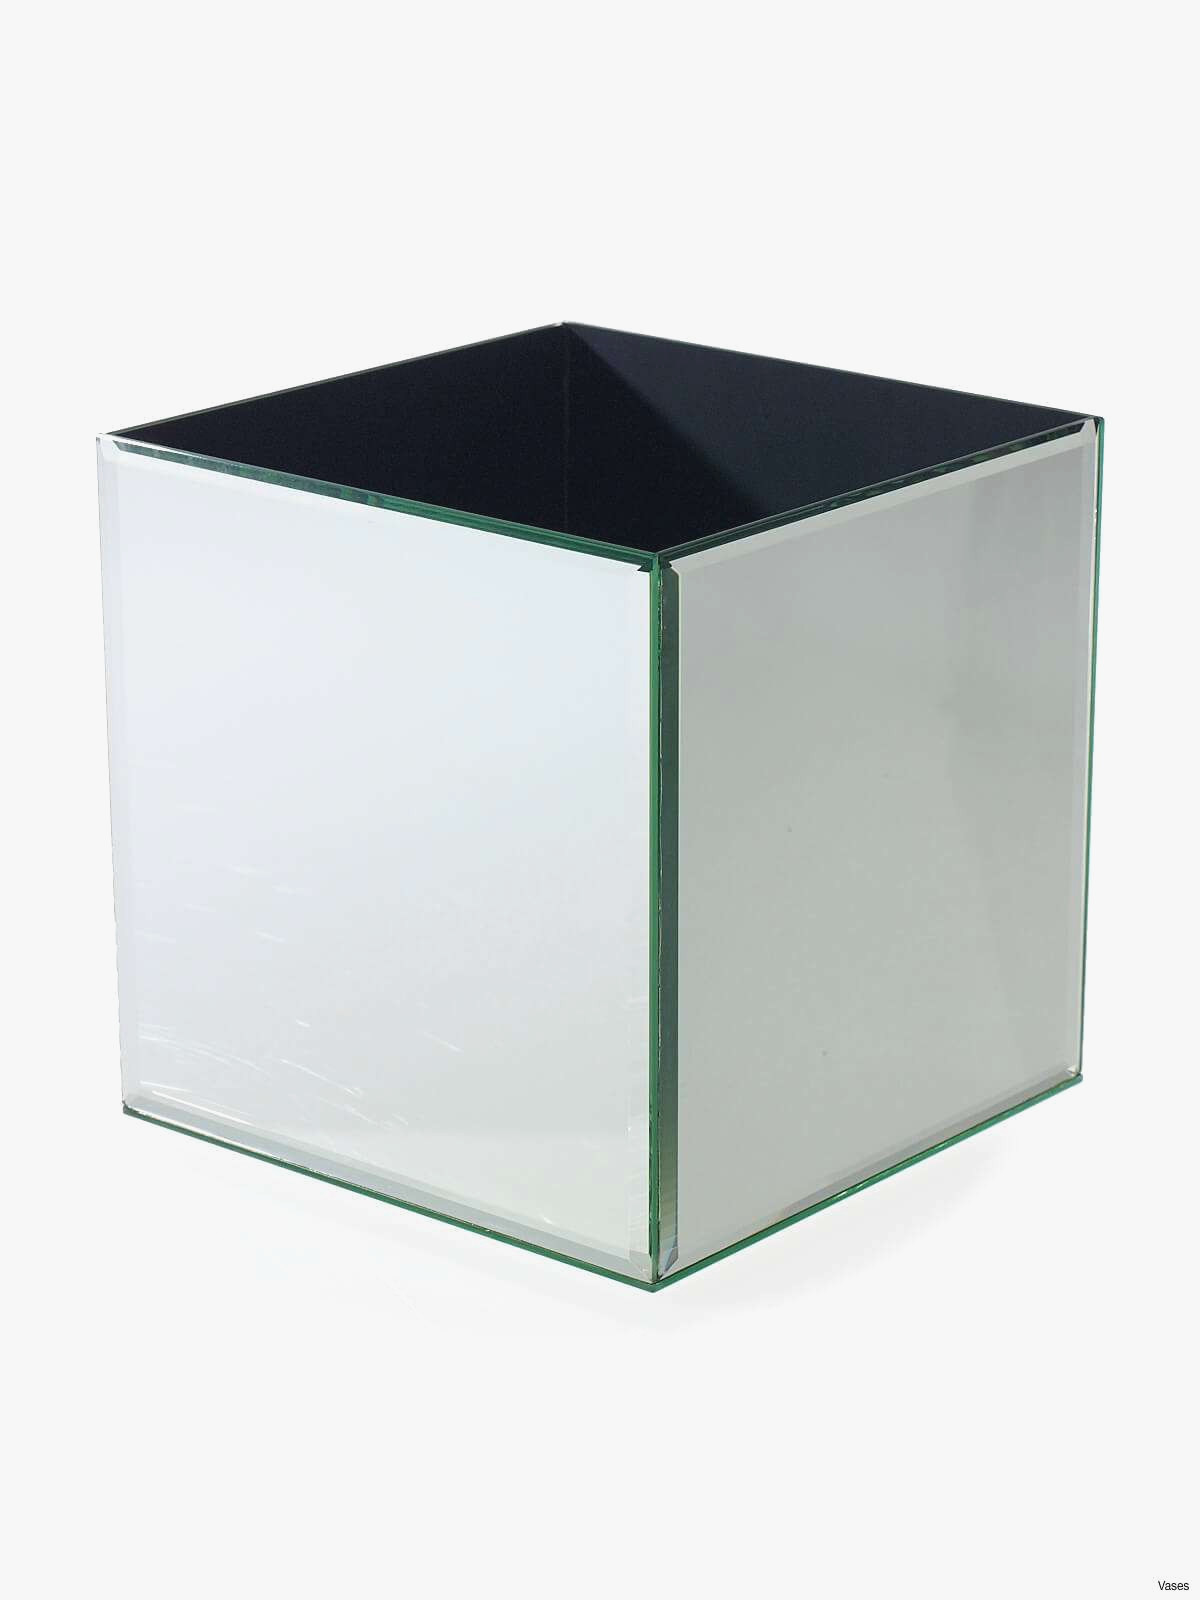 15 Amazing Black Glass Vases wholesale 2021 free download black glass vases wholesale of 12 lovely glass centerpieces for tables collection 7p7u table gallery with regard to glass centerpieces for tables elegant mirrored square vase 3h vases mirror